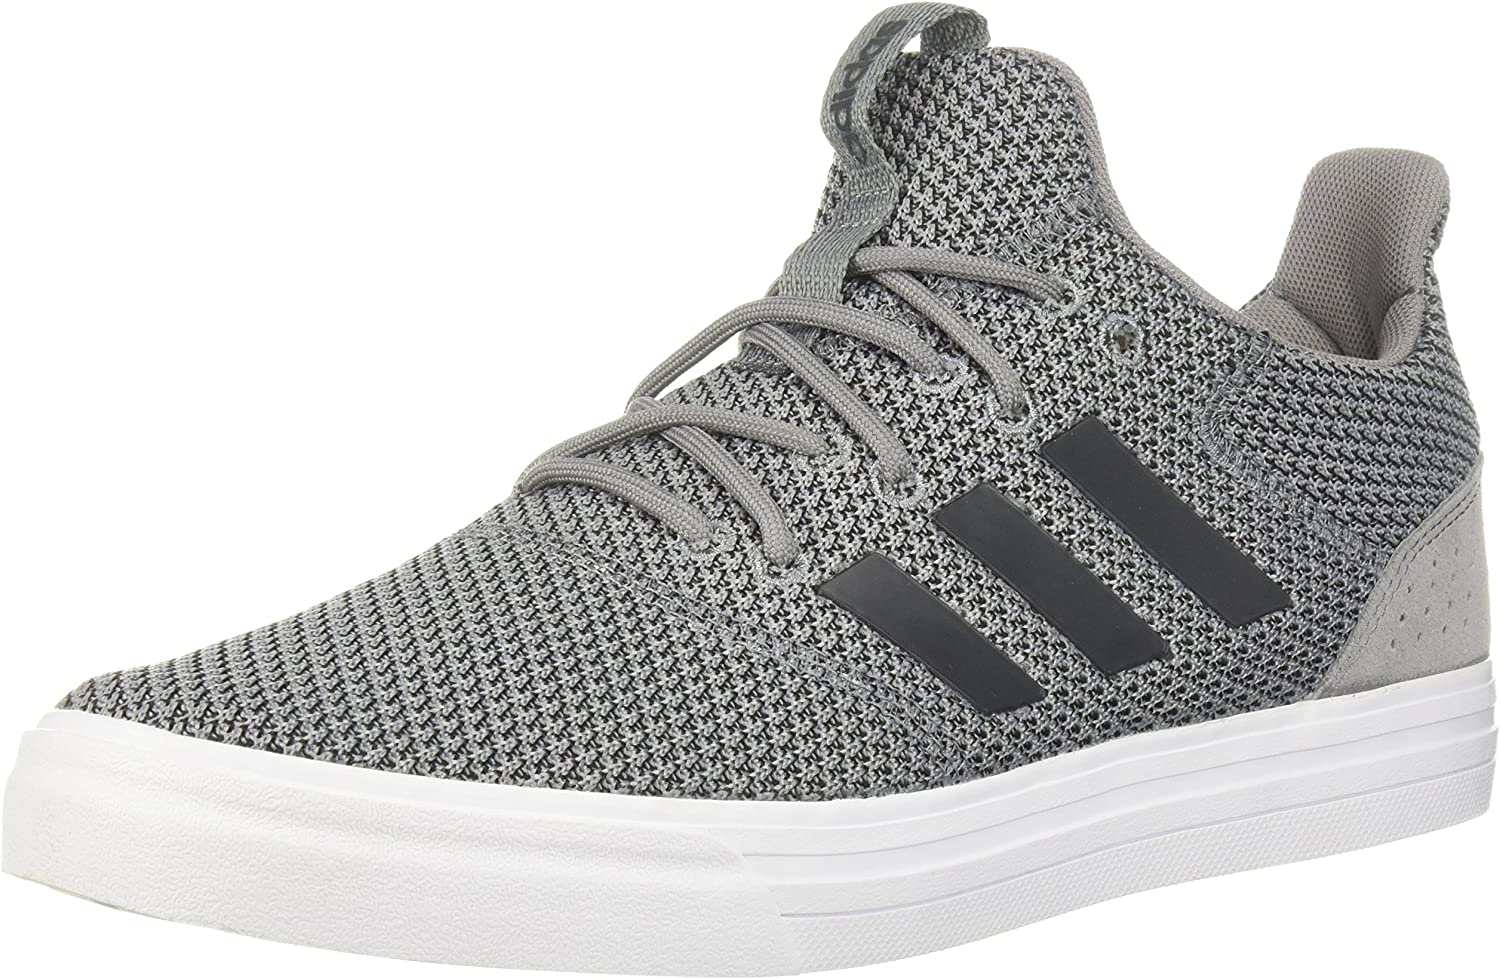 Adidas Men's Stealth, Core Black Grey Five Carbon, 14 M US